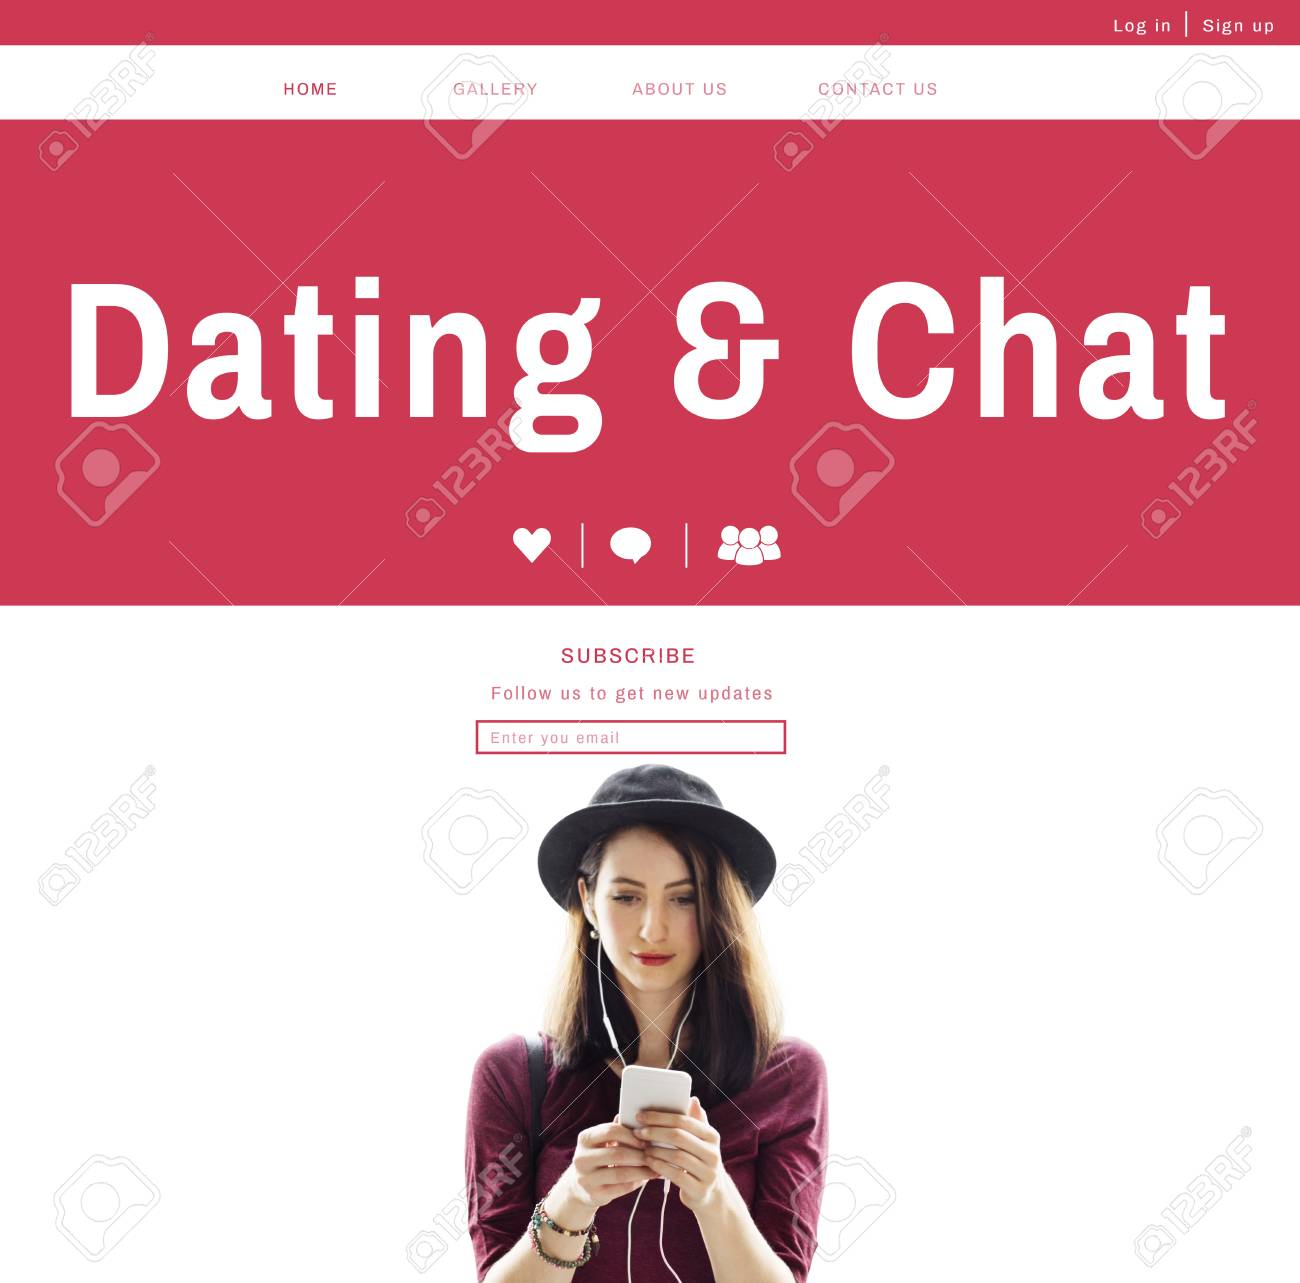 how to know if he is the one christian dating Santiago de Veraguas